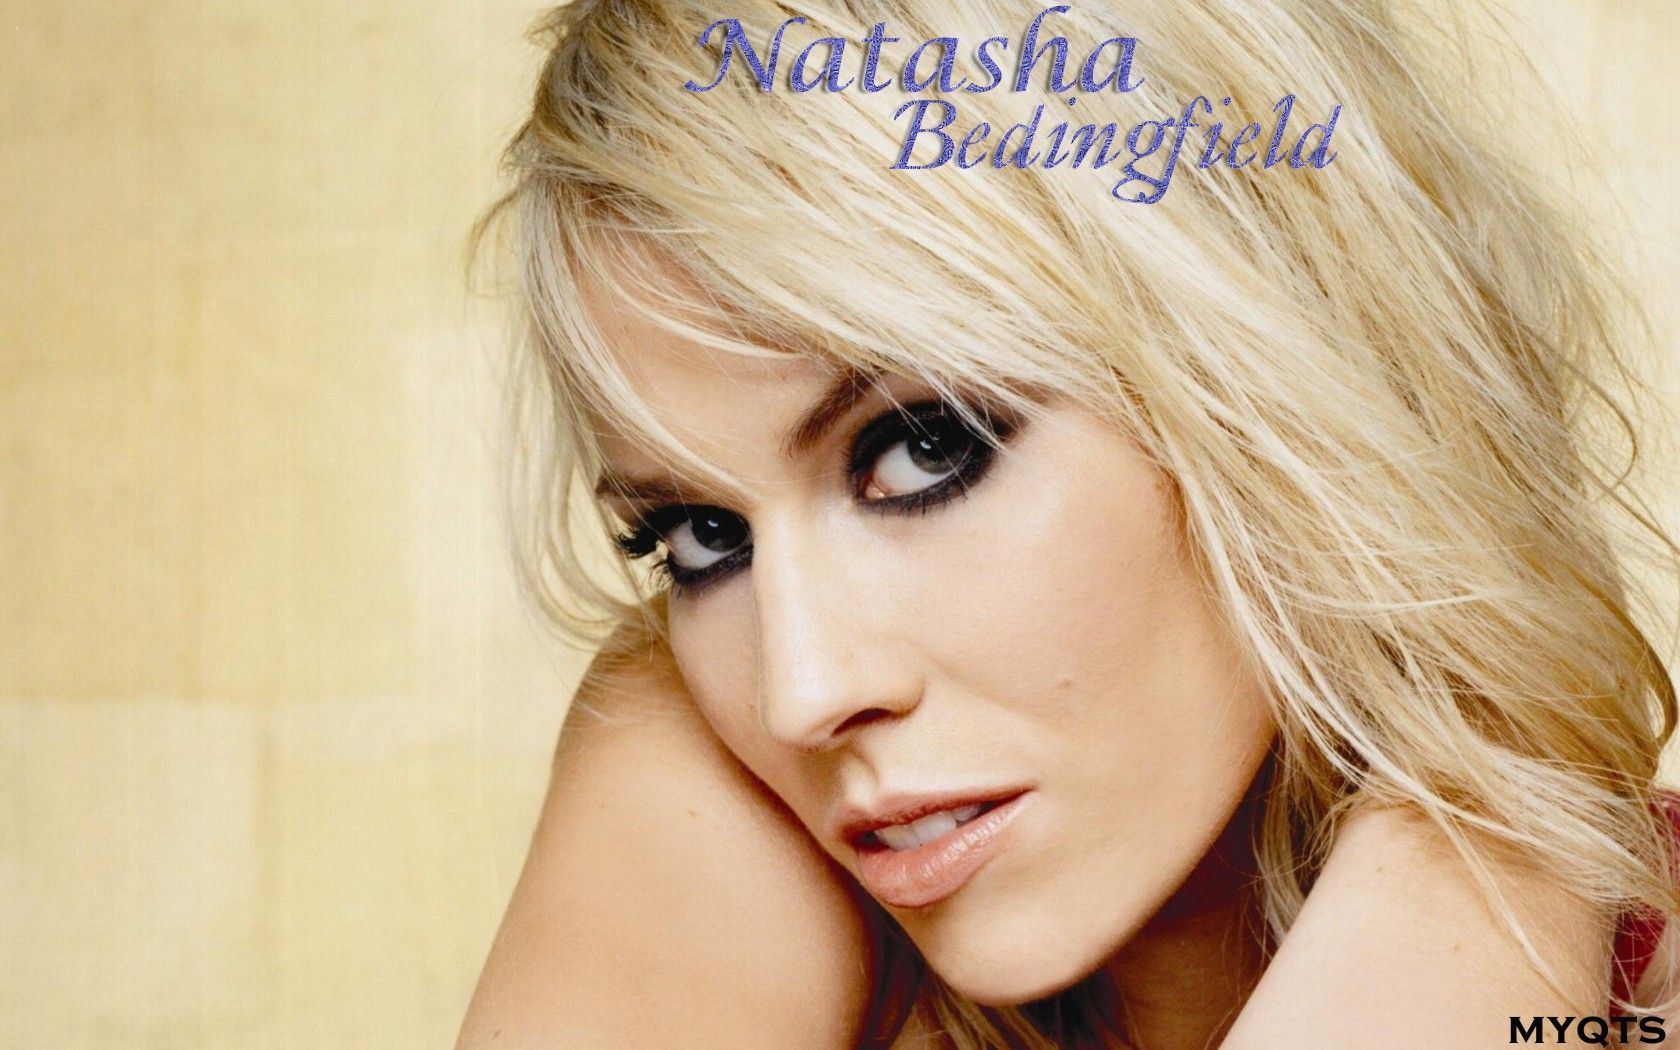 natasha bedingfield - pocketful of sunshine перевод